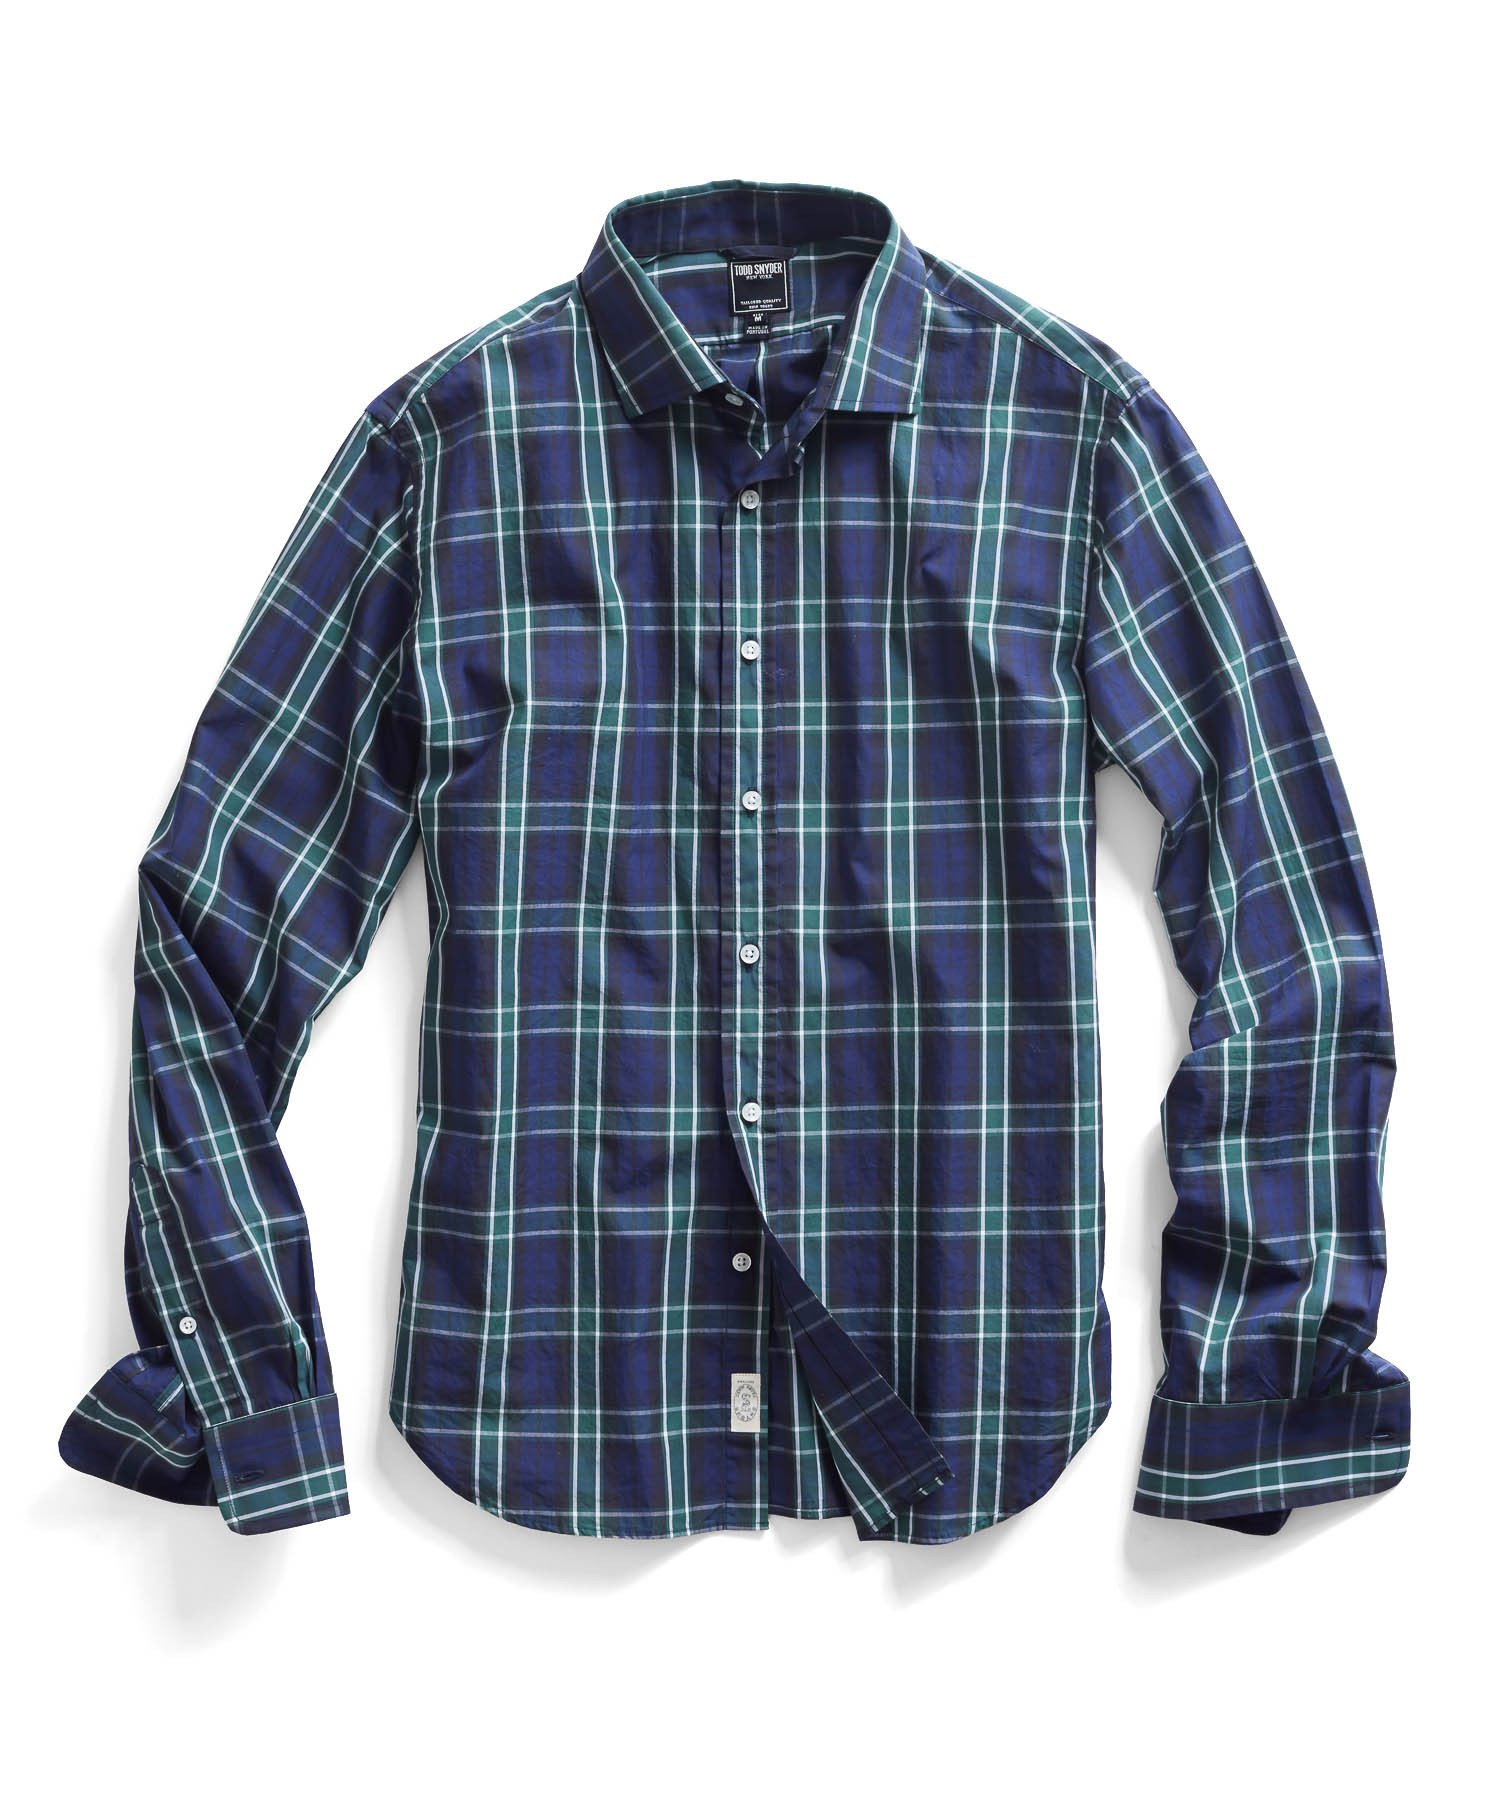 Todd Snyder Navy Plaid Shirt In Blue For Men Lyst